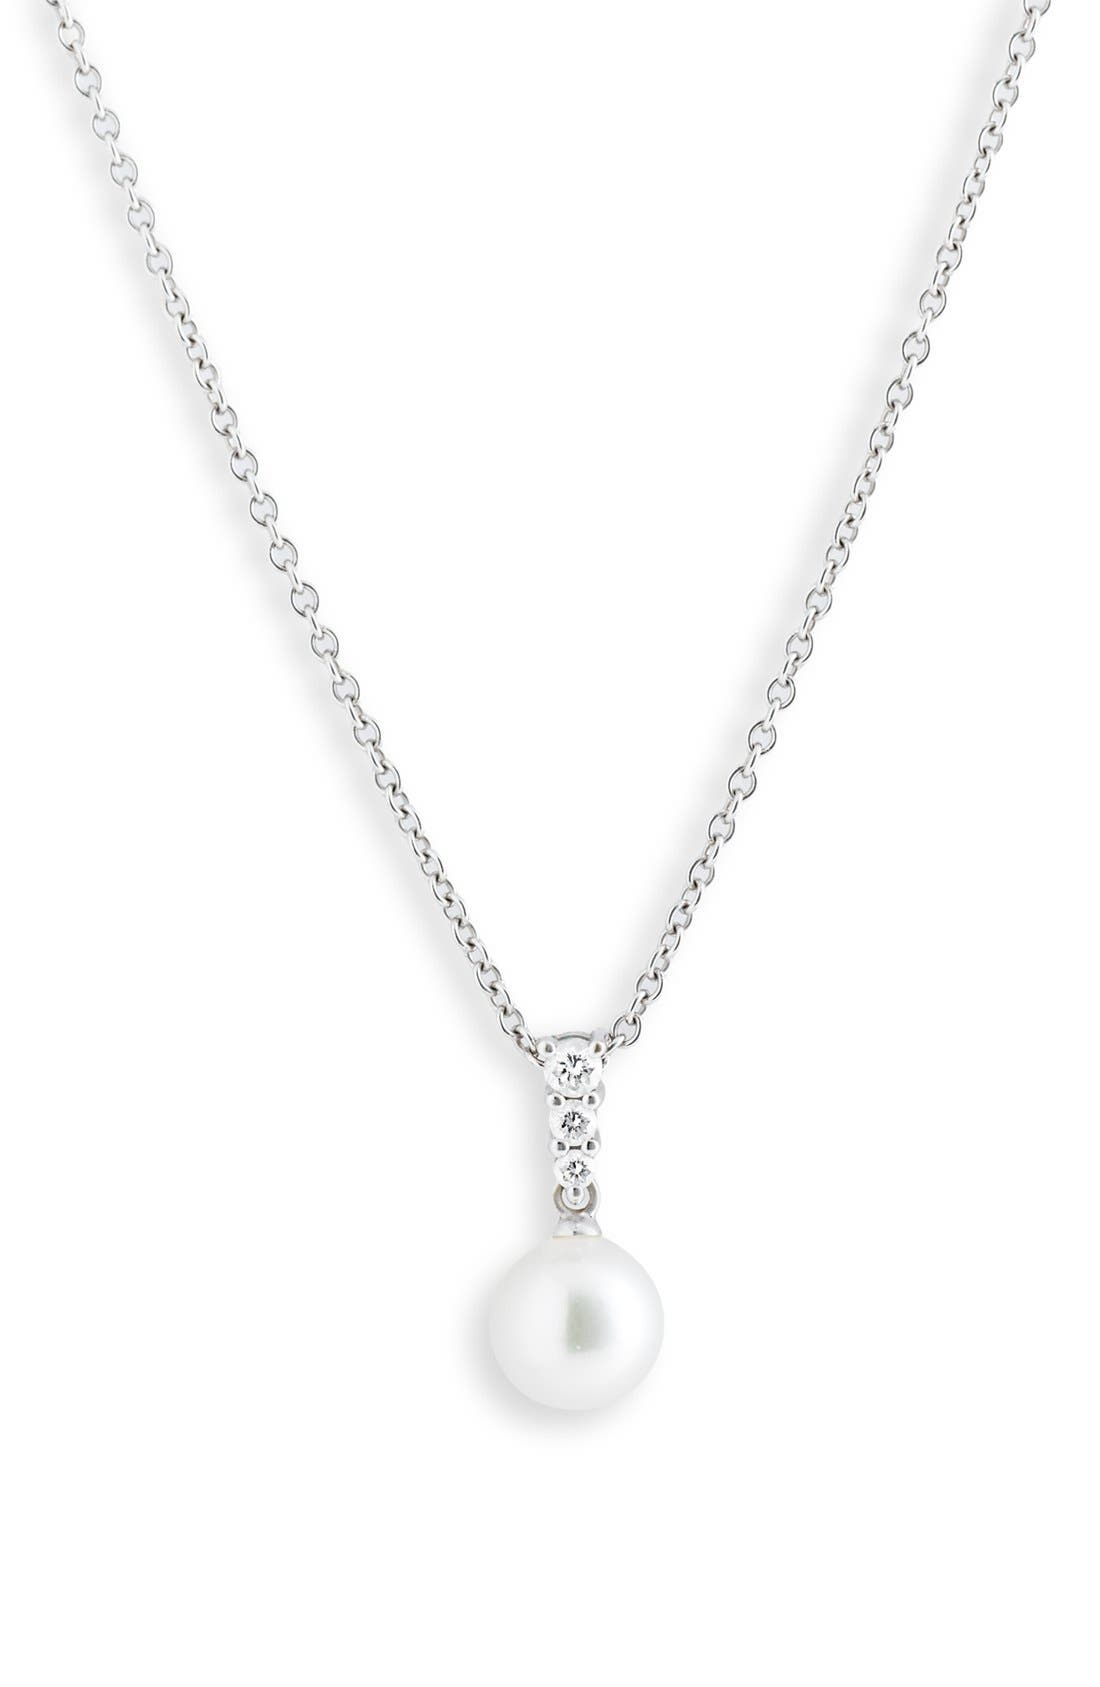 Mikimoto 'Morning Dew' Akoya Cultured Pearl & Diamond Pendant Necklace